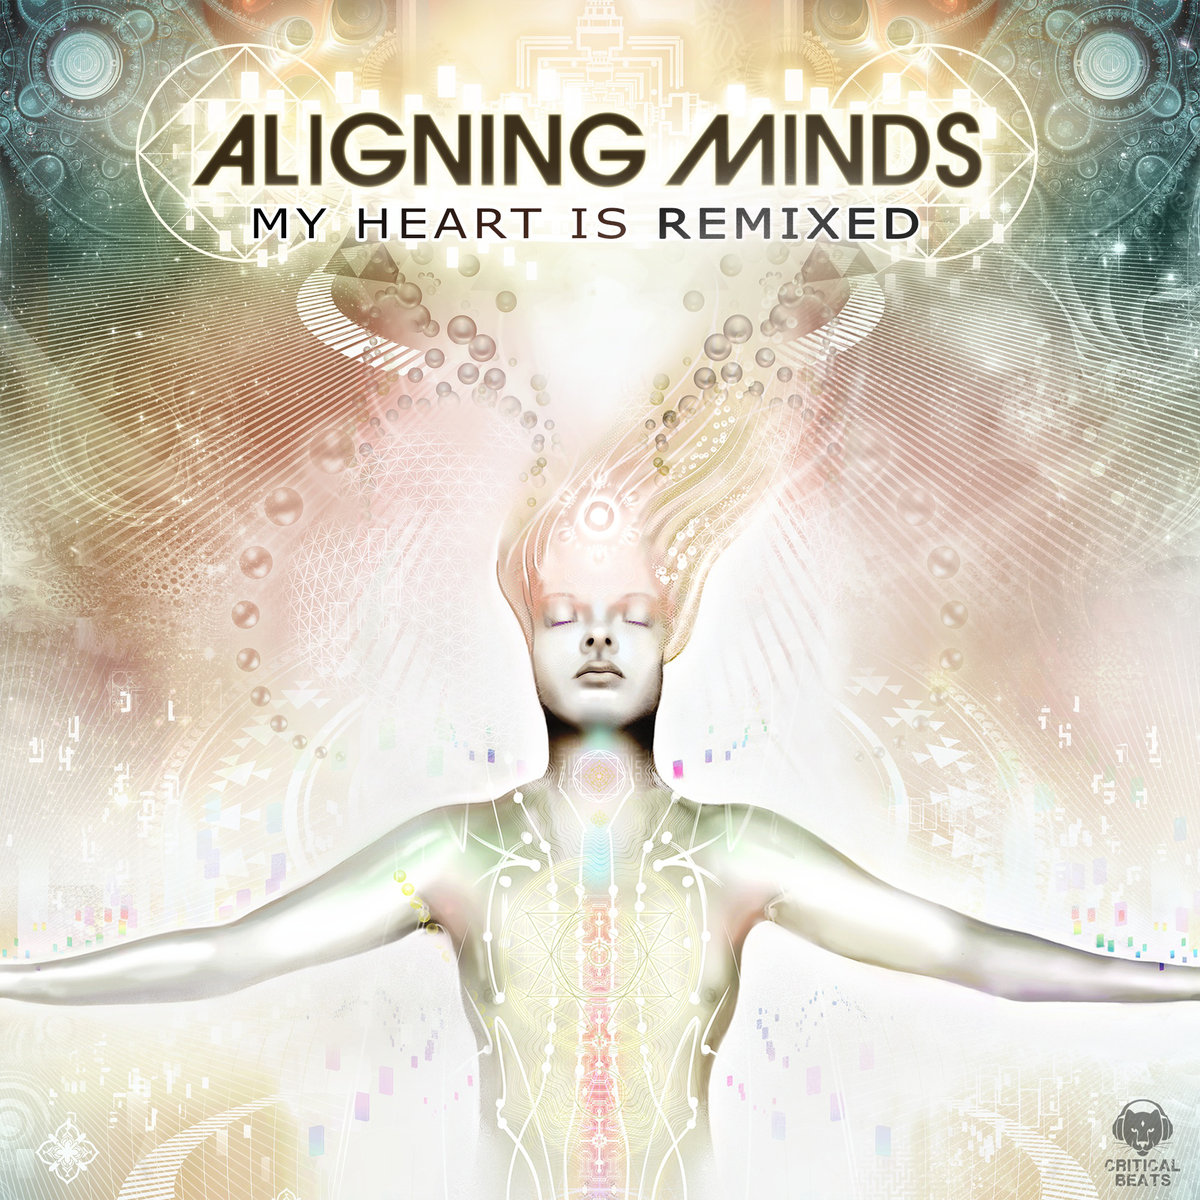 Aligning Minds - A Noble Truth (Heavenly Father Remix) @ 'My Heart Is Remixed' album (asheville, baltimore)